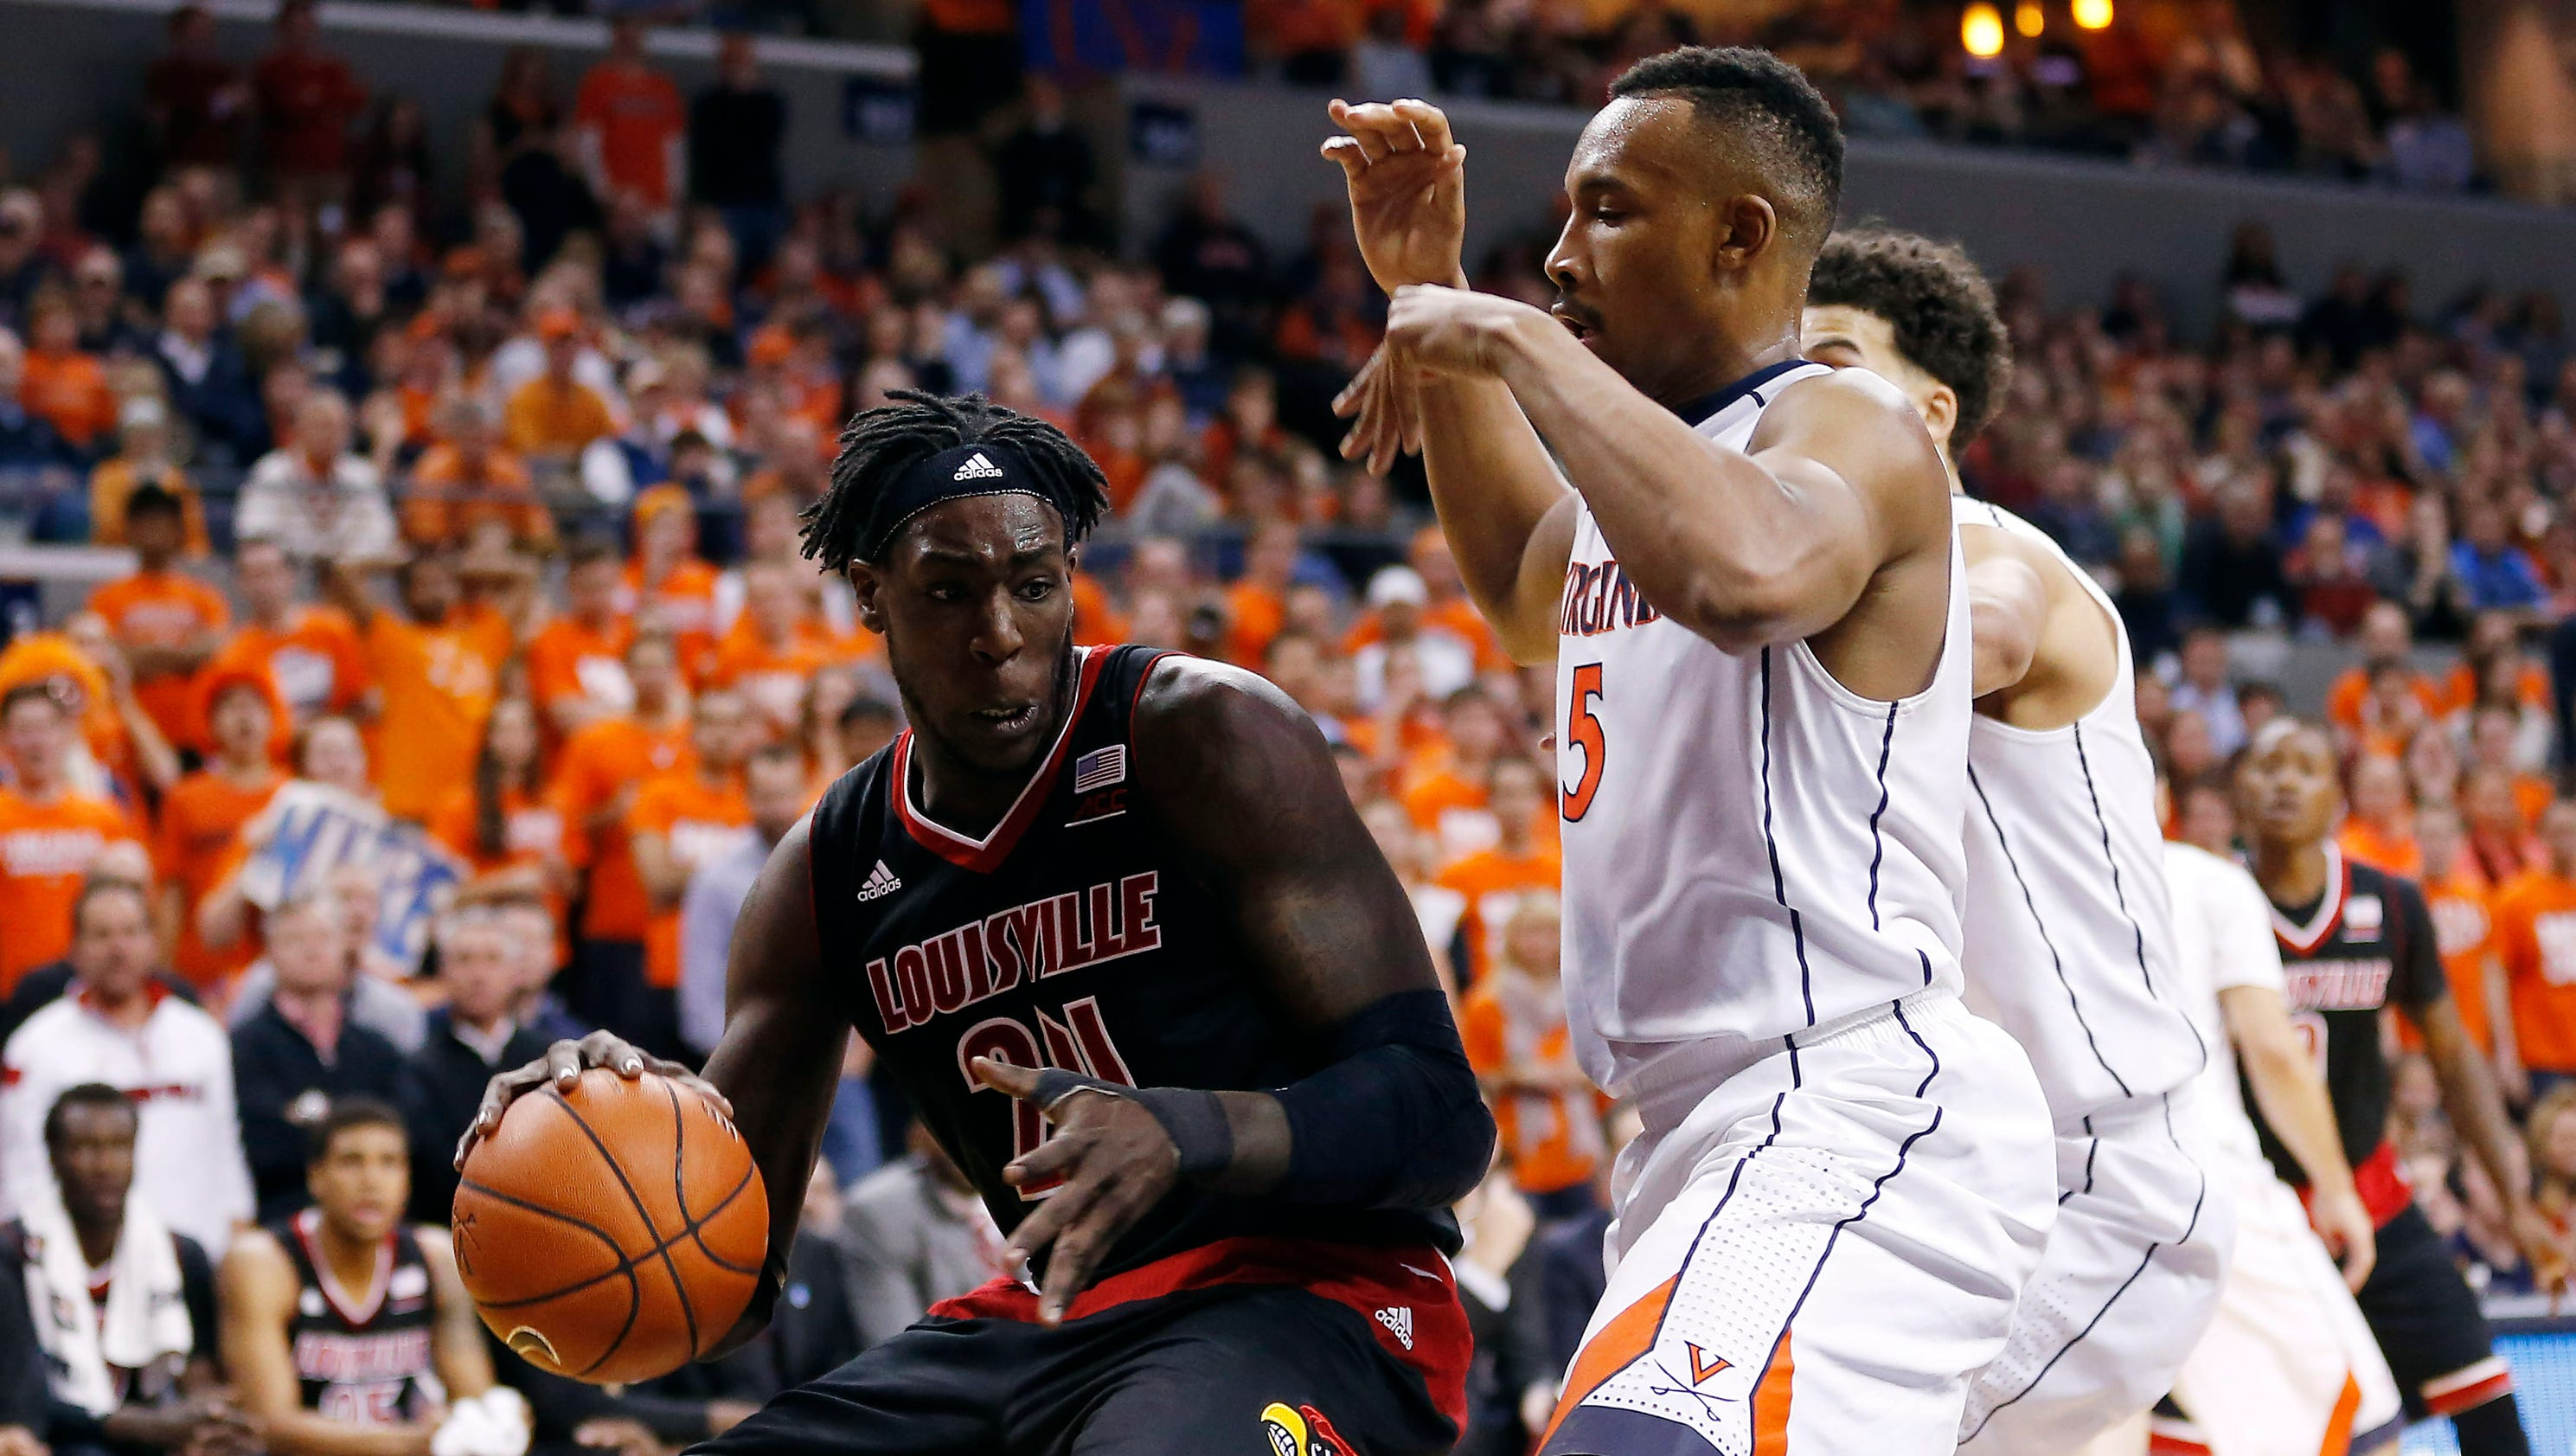 Justin Anderson injured in No. 3 Virginia's win over No. 8 Louisville